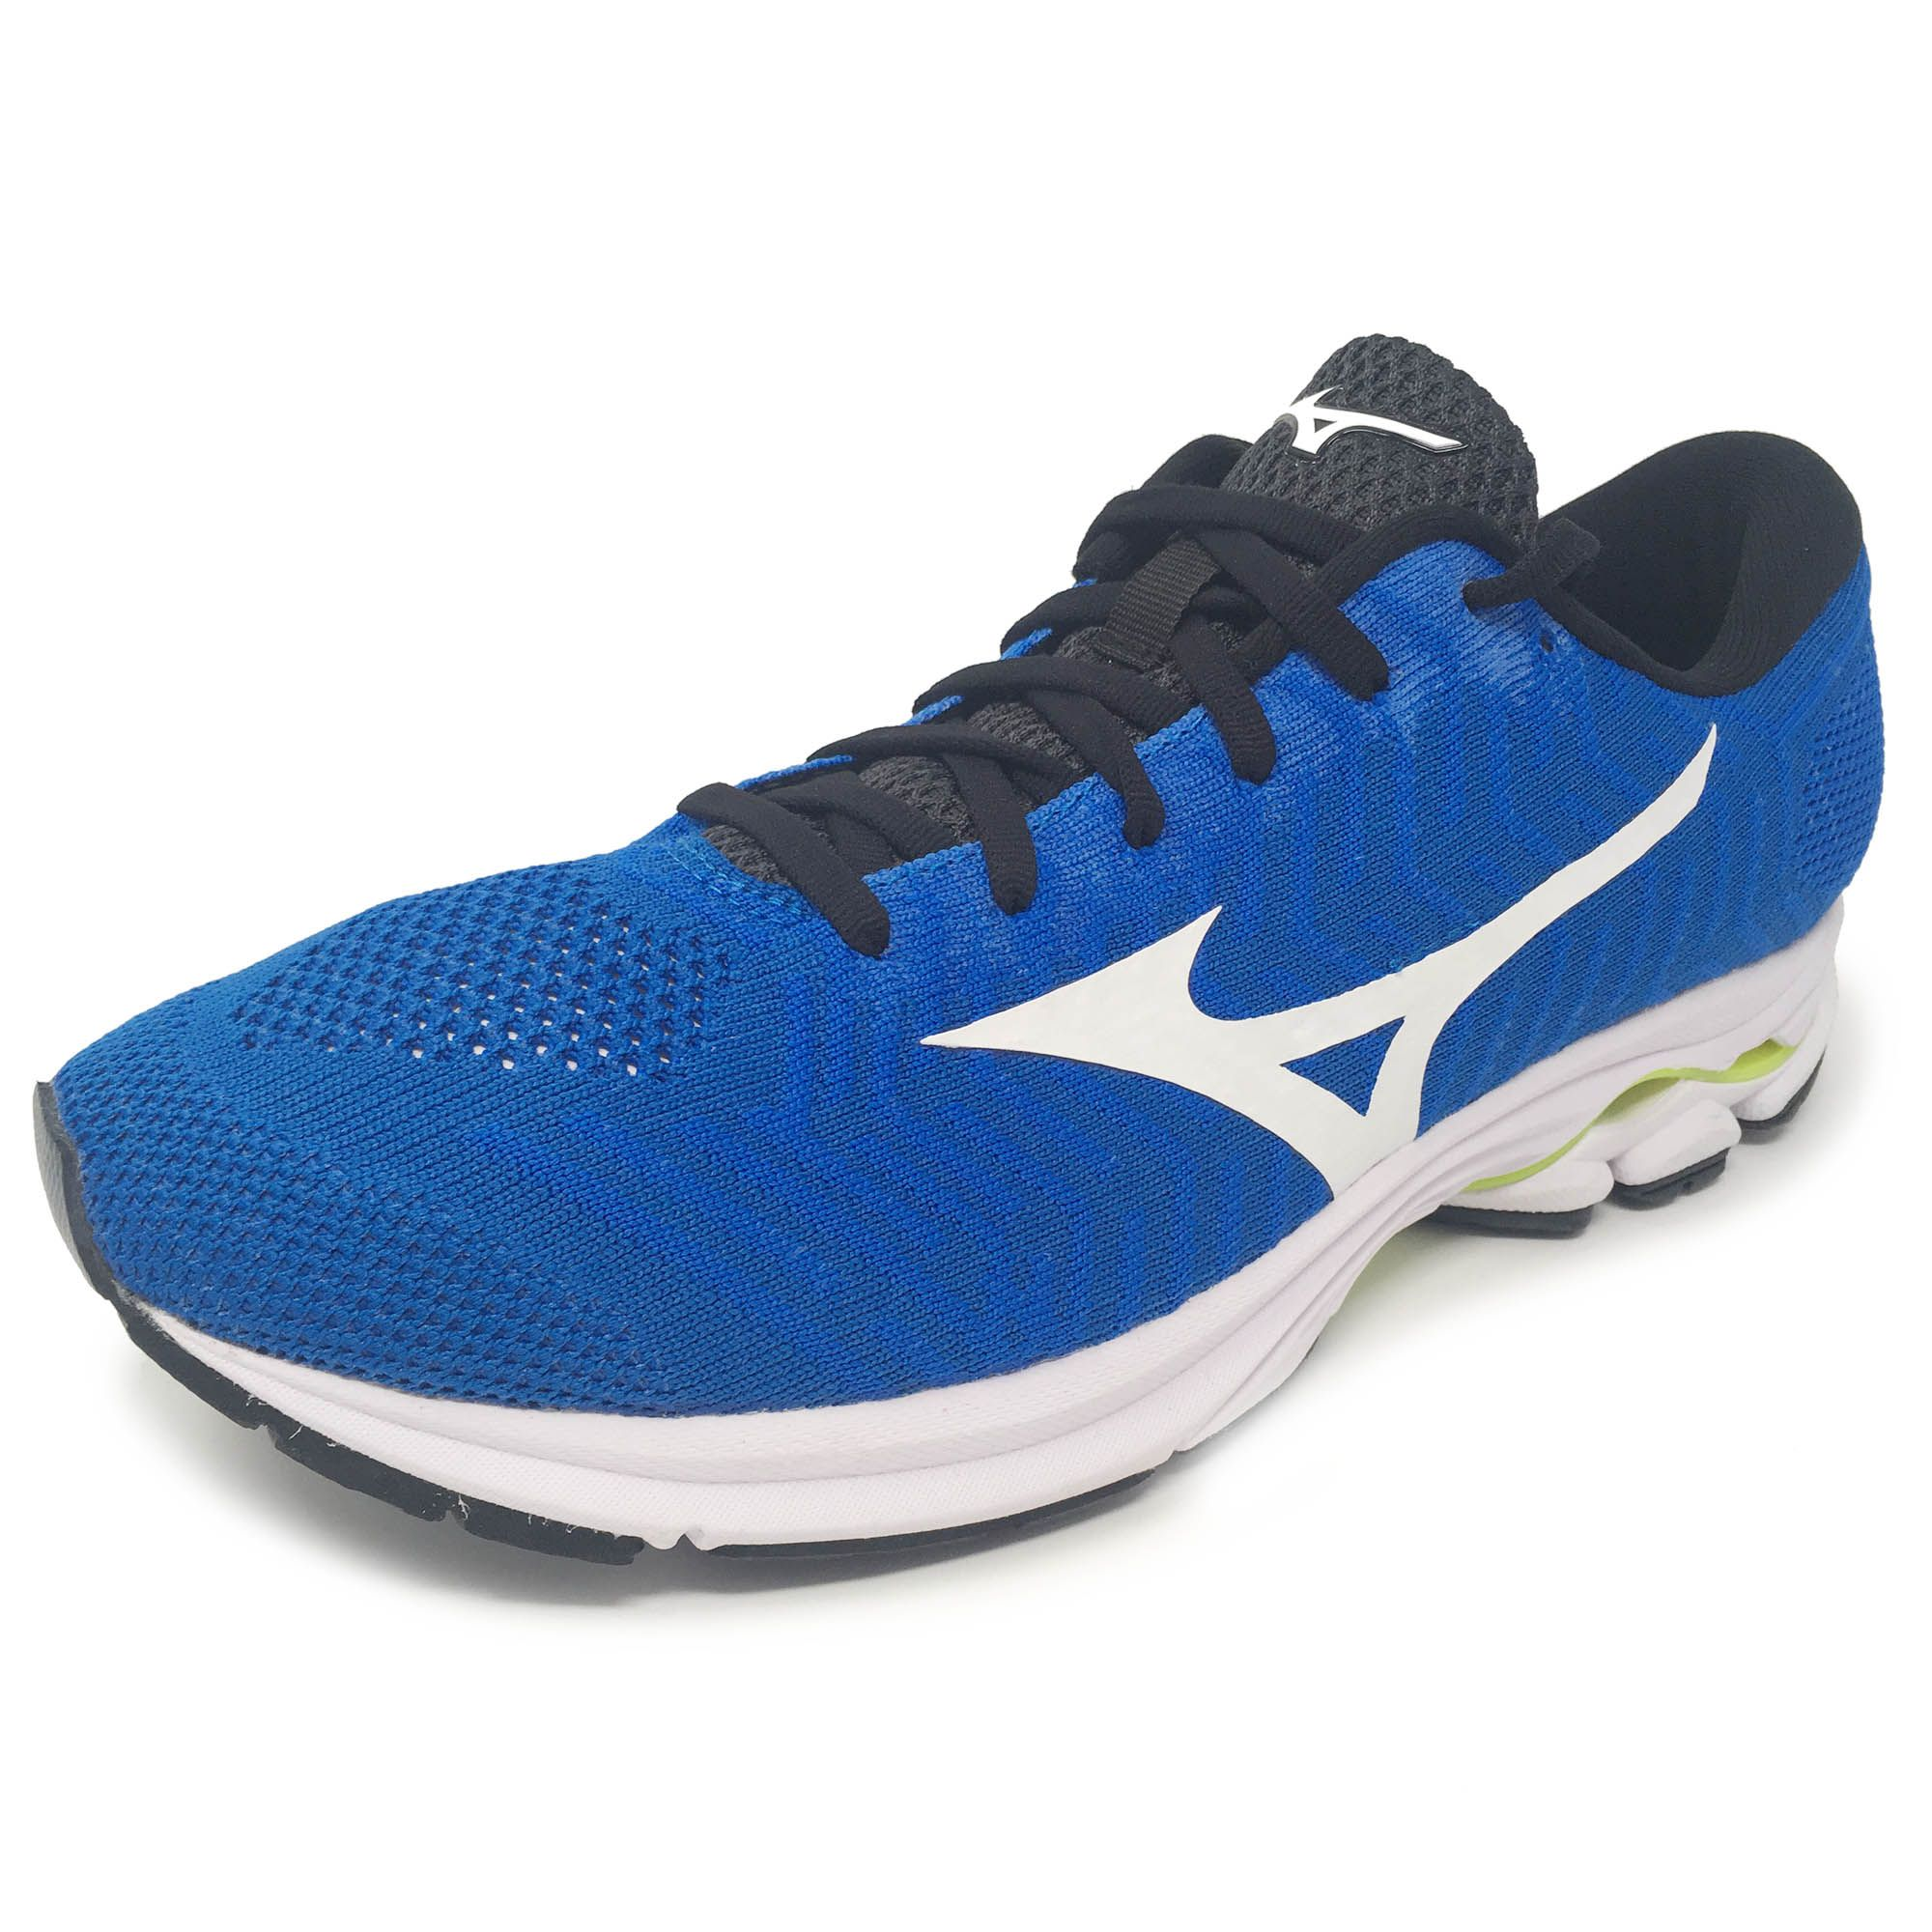 Mizuno Mens Running Shoes Sale